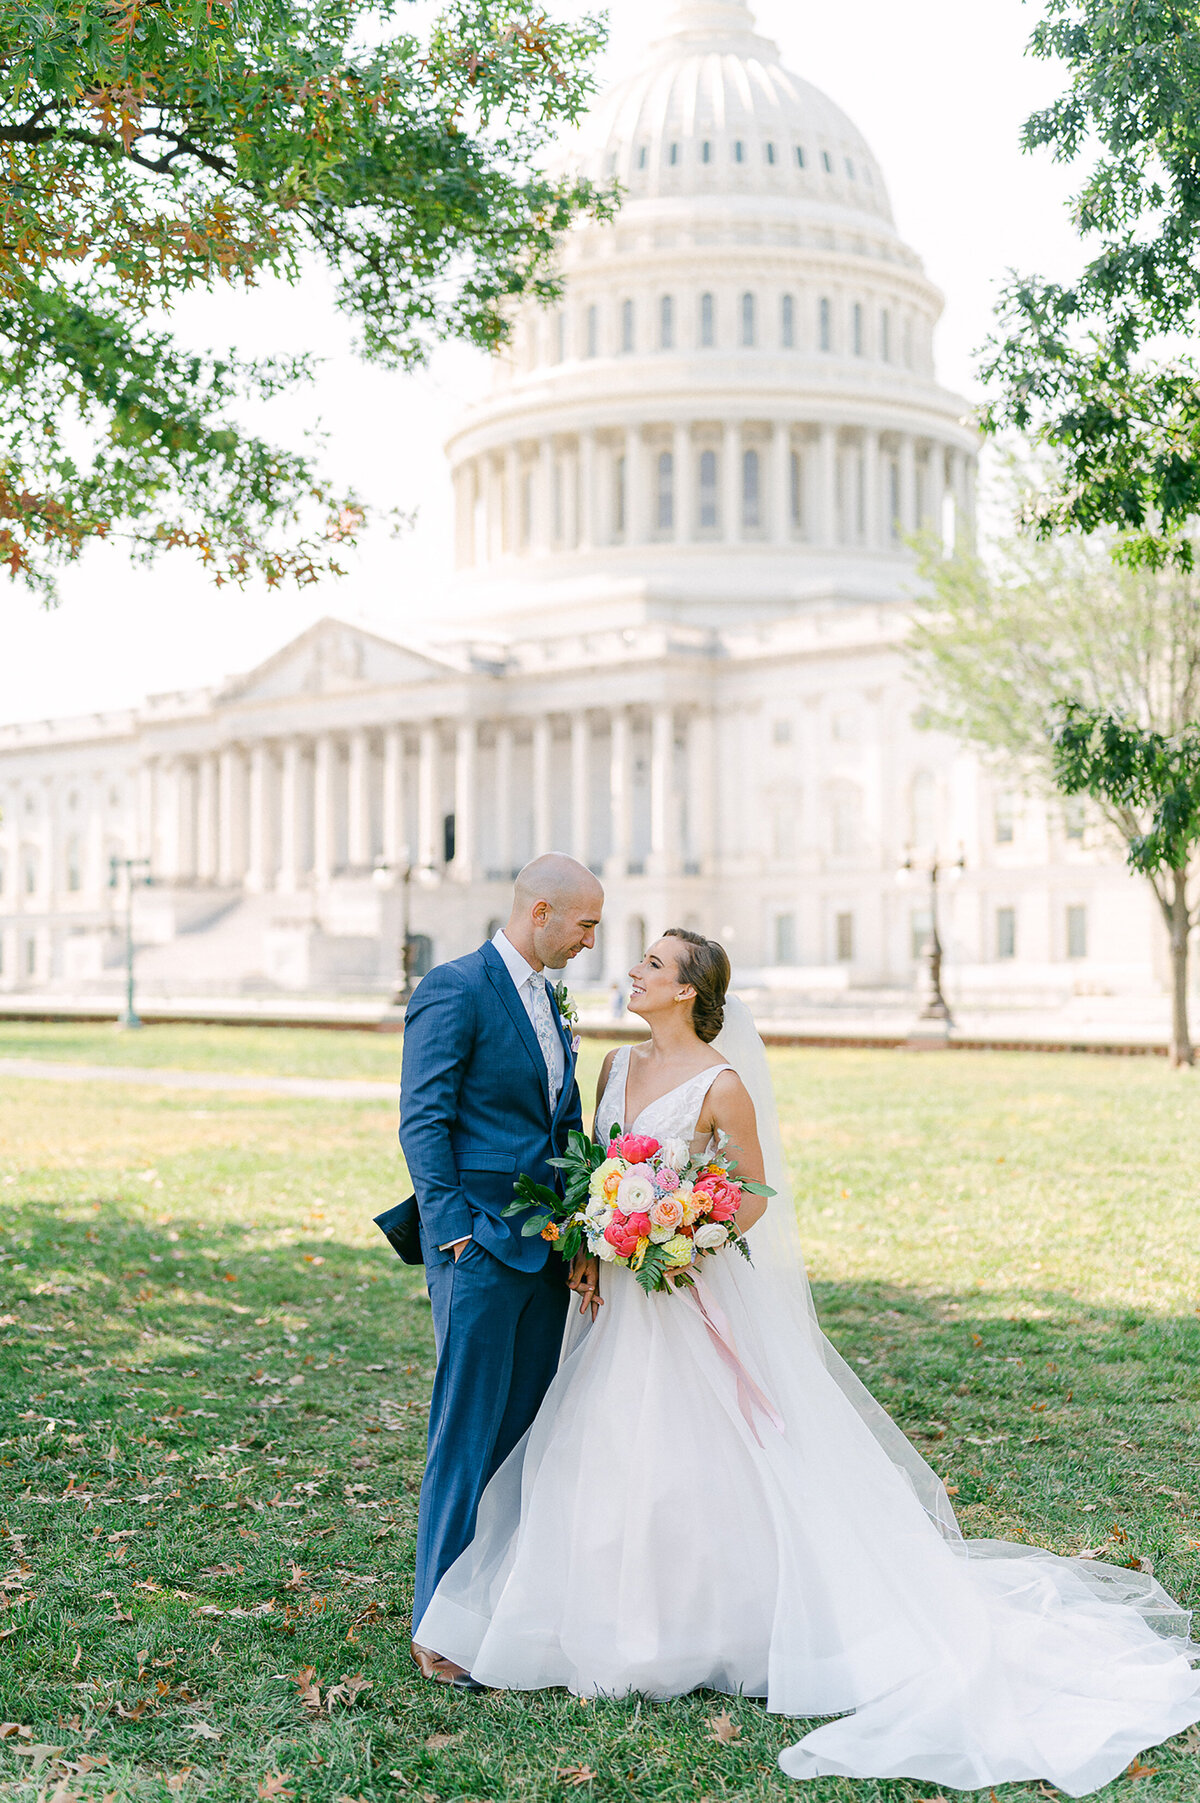 Jennifer Bosak Photography - DC Area Wedding Photography - DC, Virginia, Maryland - Jeanna + Michael - Decatur House Wedding - 68